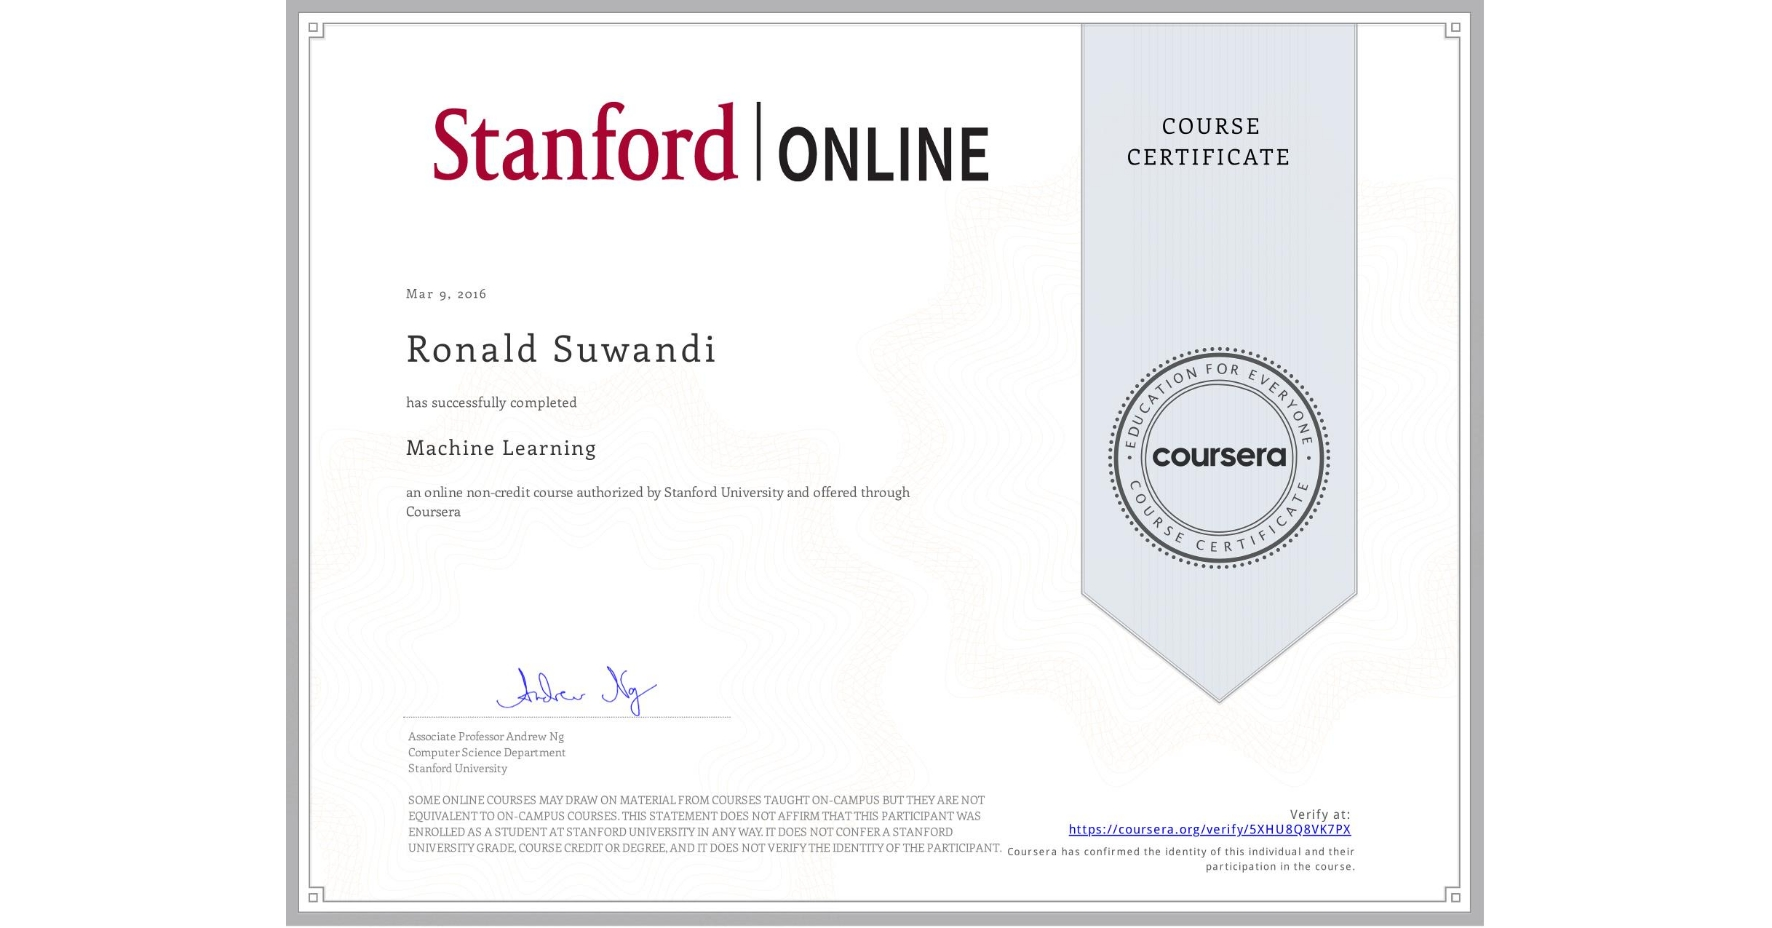 View certificate for Ronald Suwandi, Machine Learning, an online non-credit course authorized by Stanford University and offered through Coursera